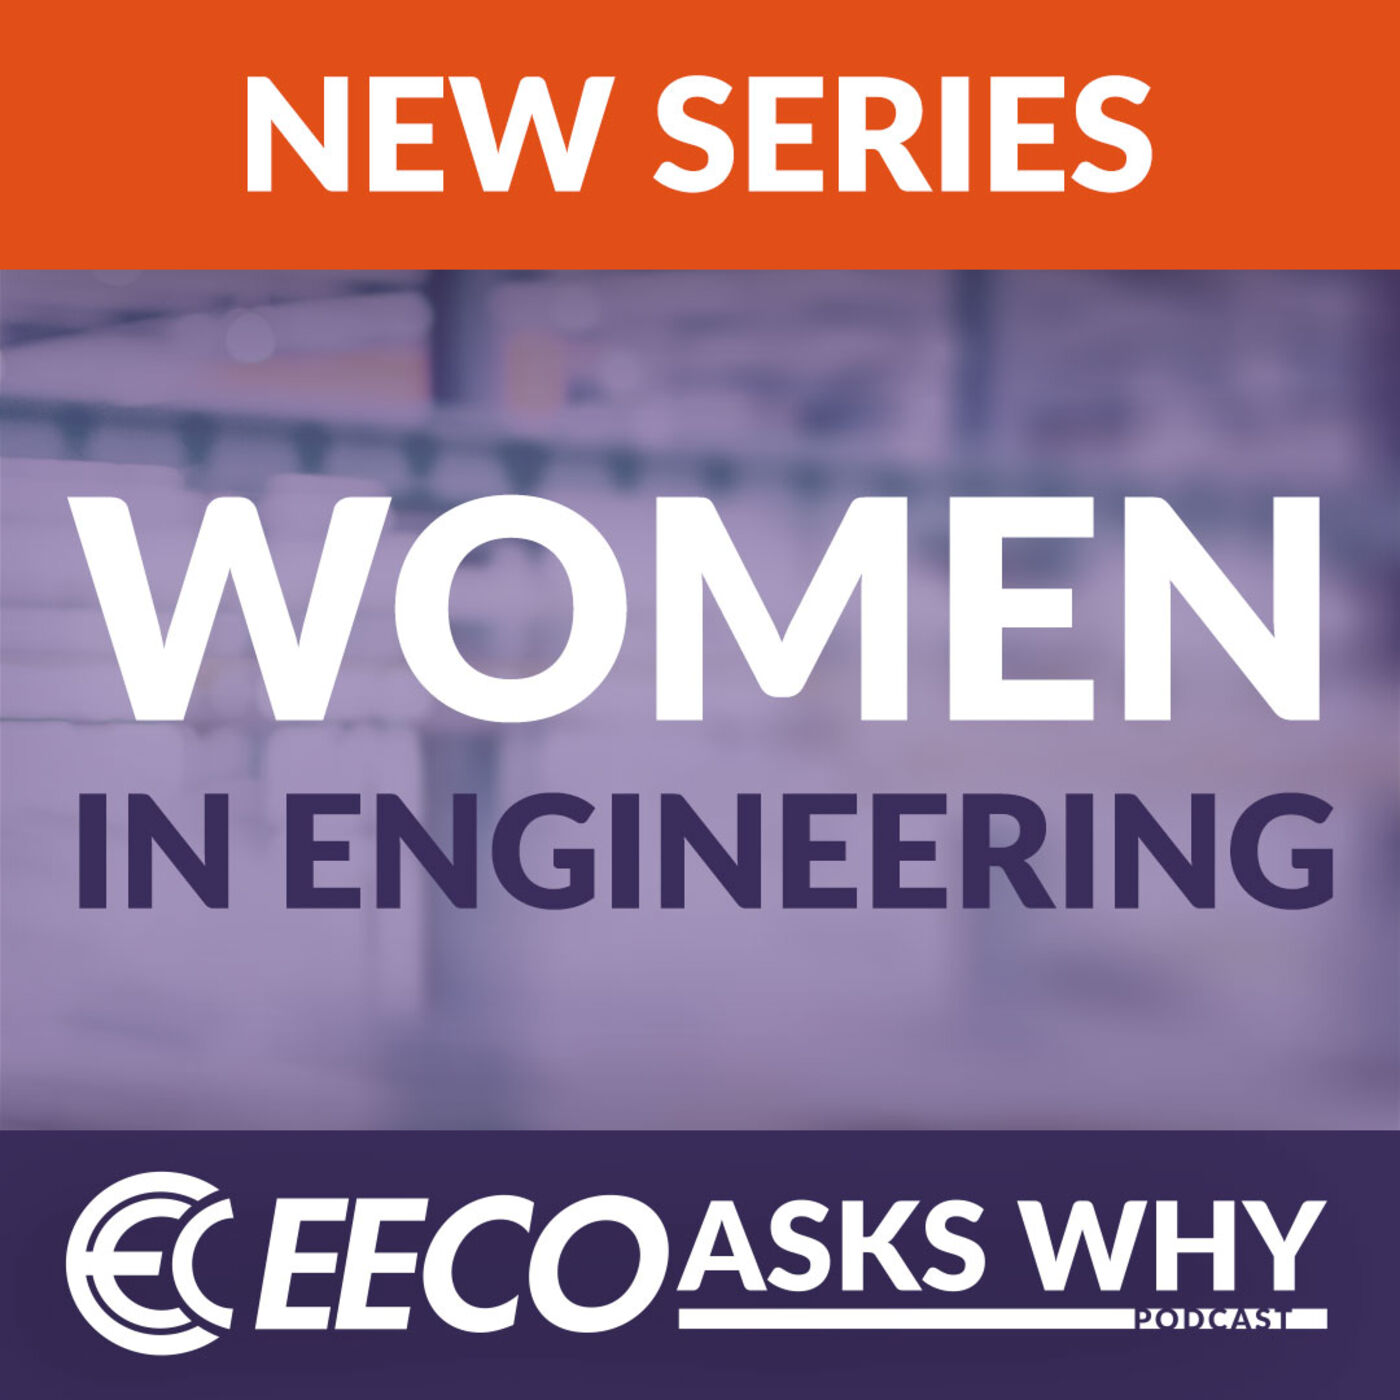 033. Women in Engineering - Now What?